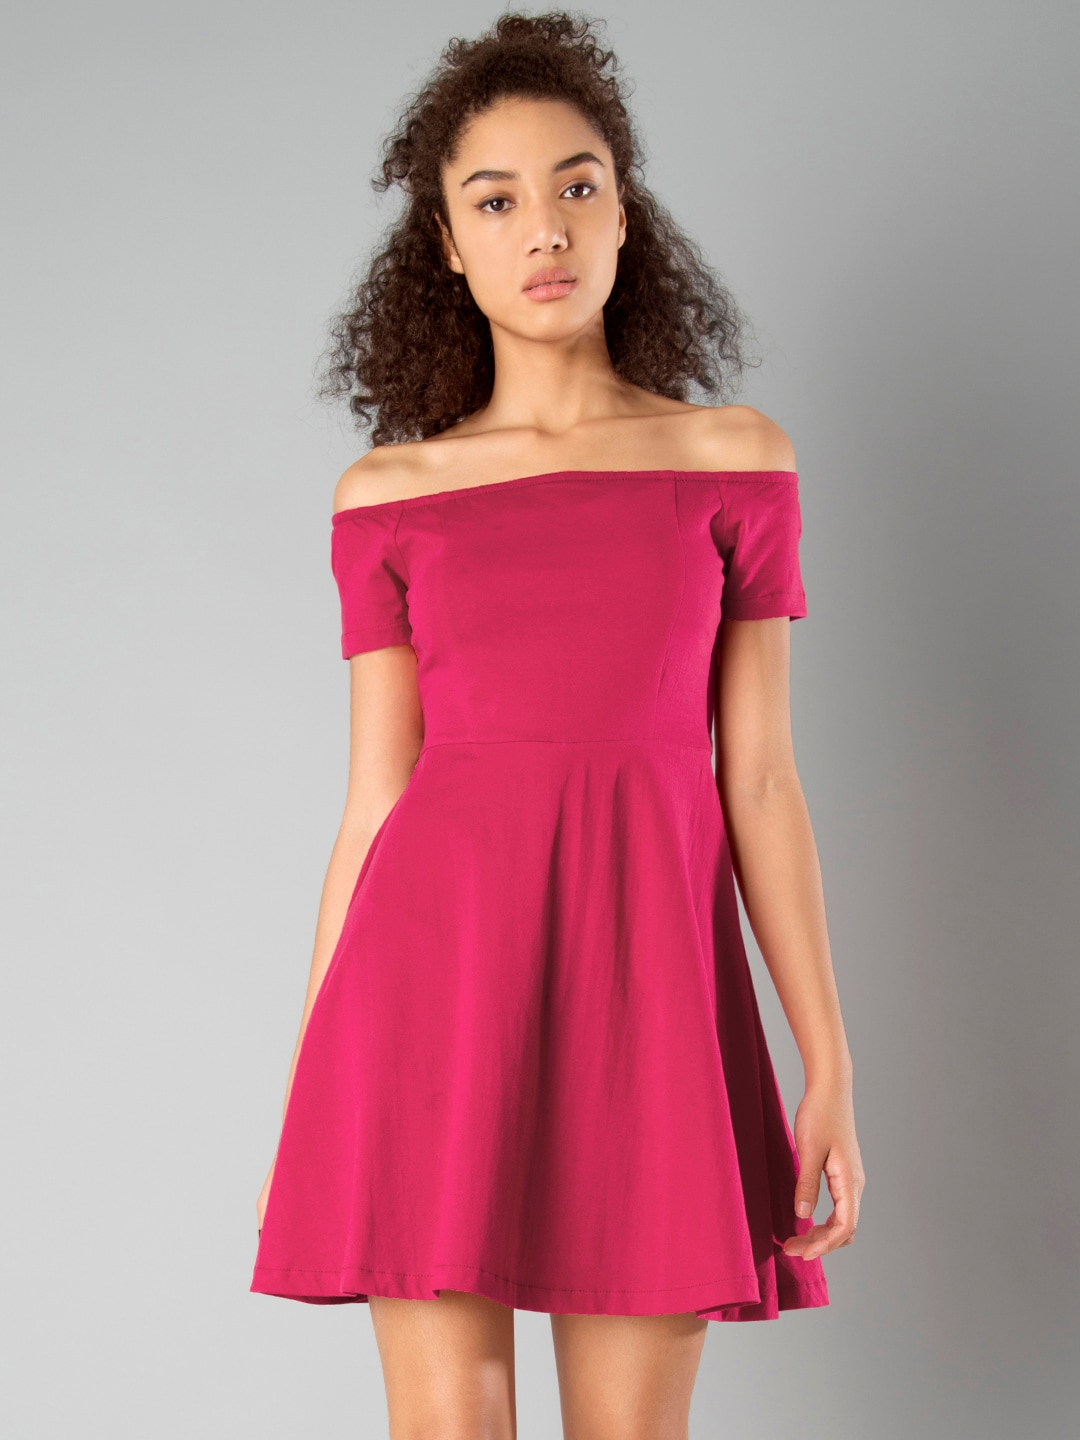 c54accd310a1 Pink Dress - Buy Pink Dresses For Women Online